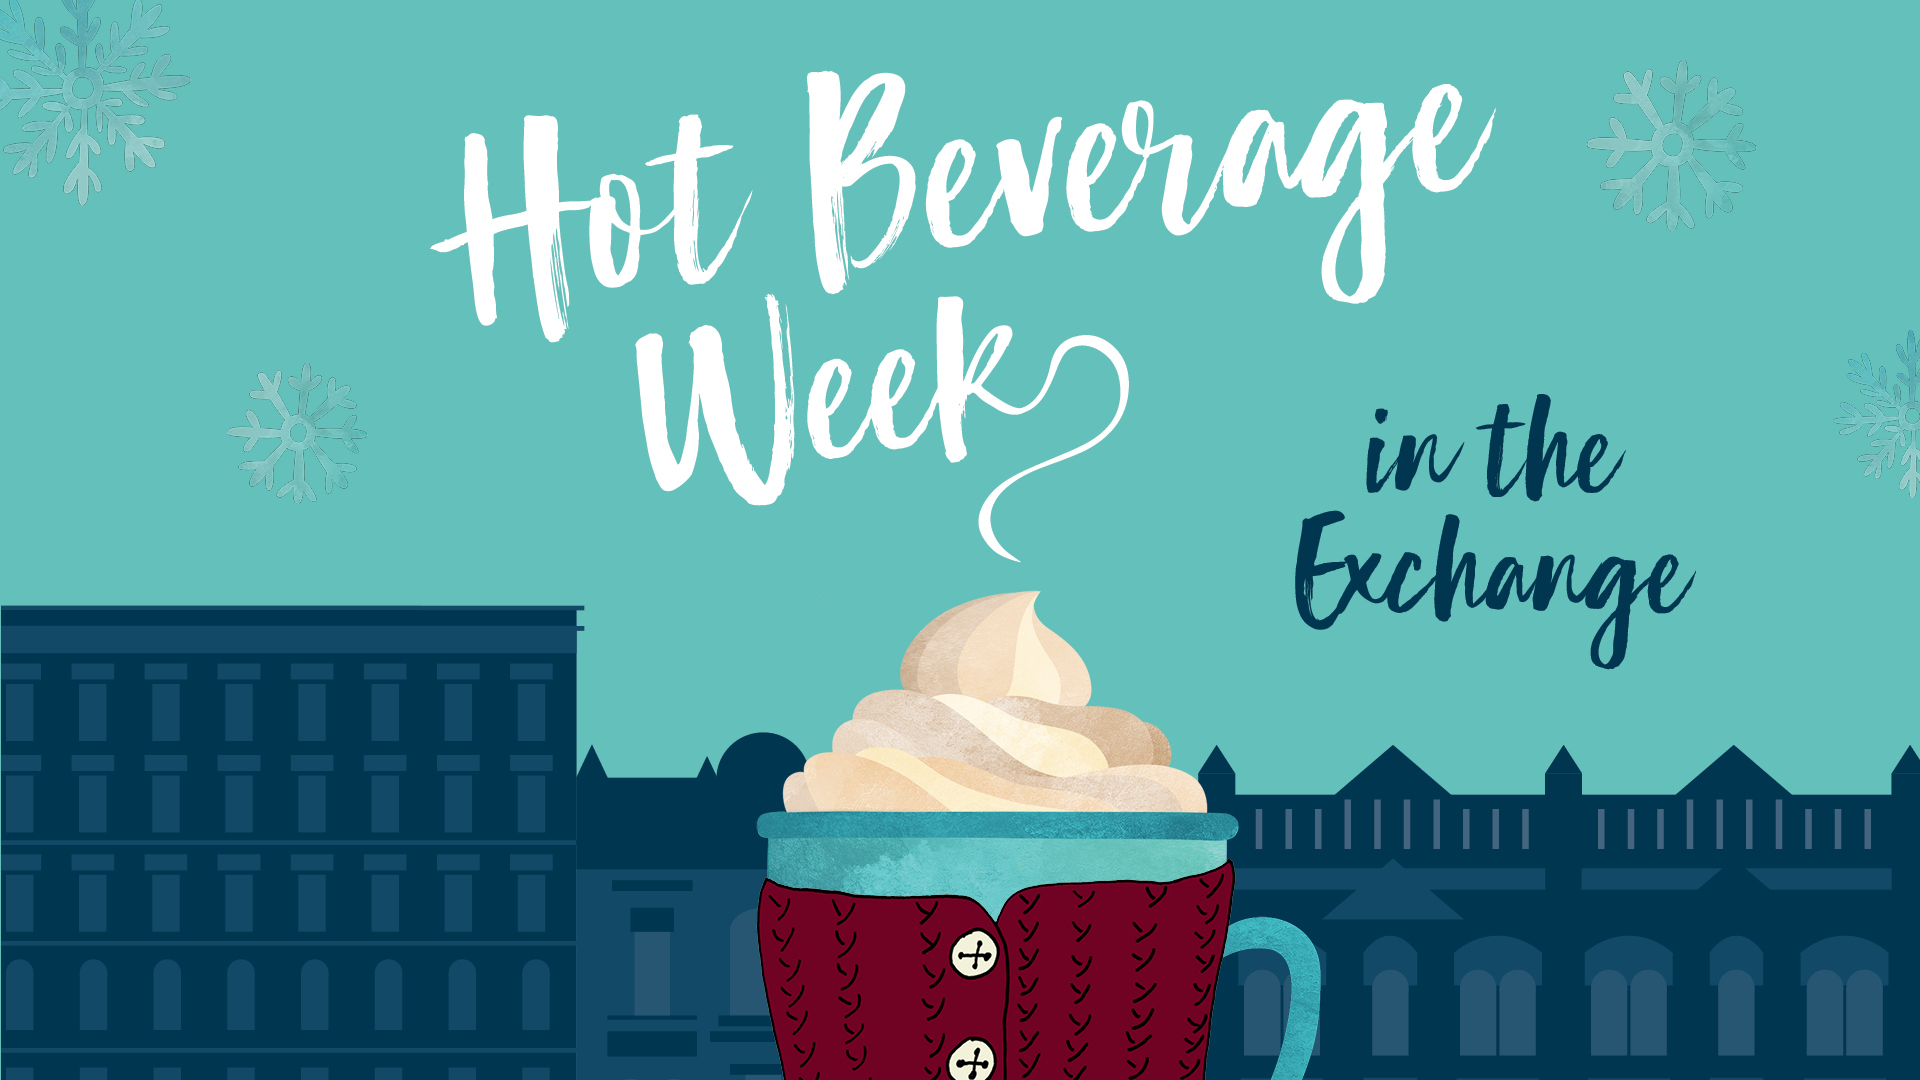 Hot Beverage Week